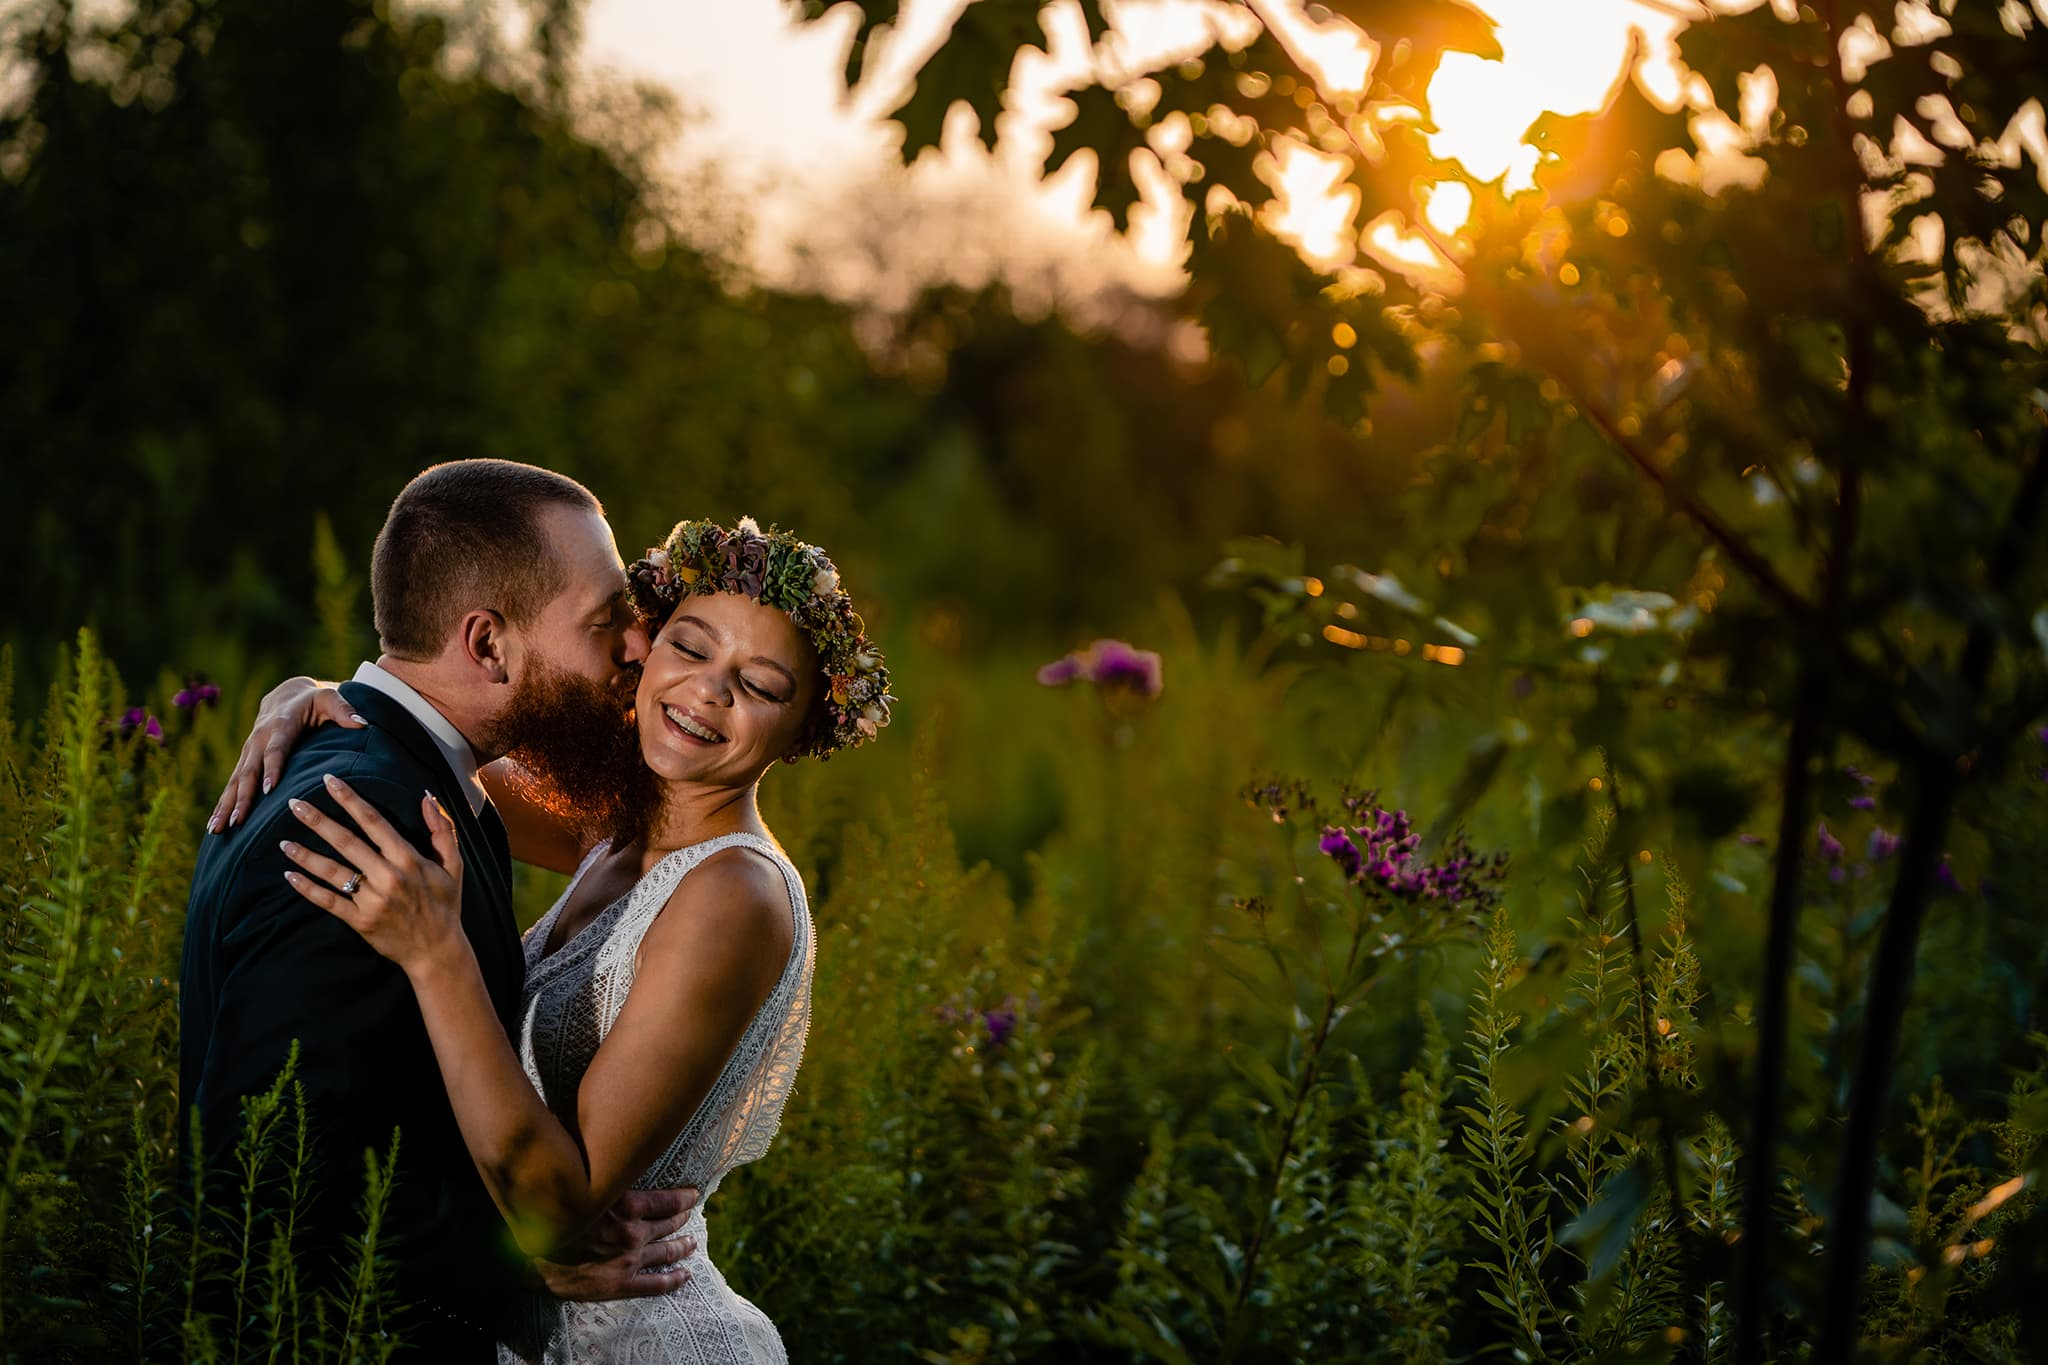 Intimate elopement photo after wedding ceremony in Cincinnati, Ohio by Dayton wedding photographer Studio 22 Photography